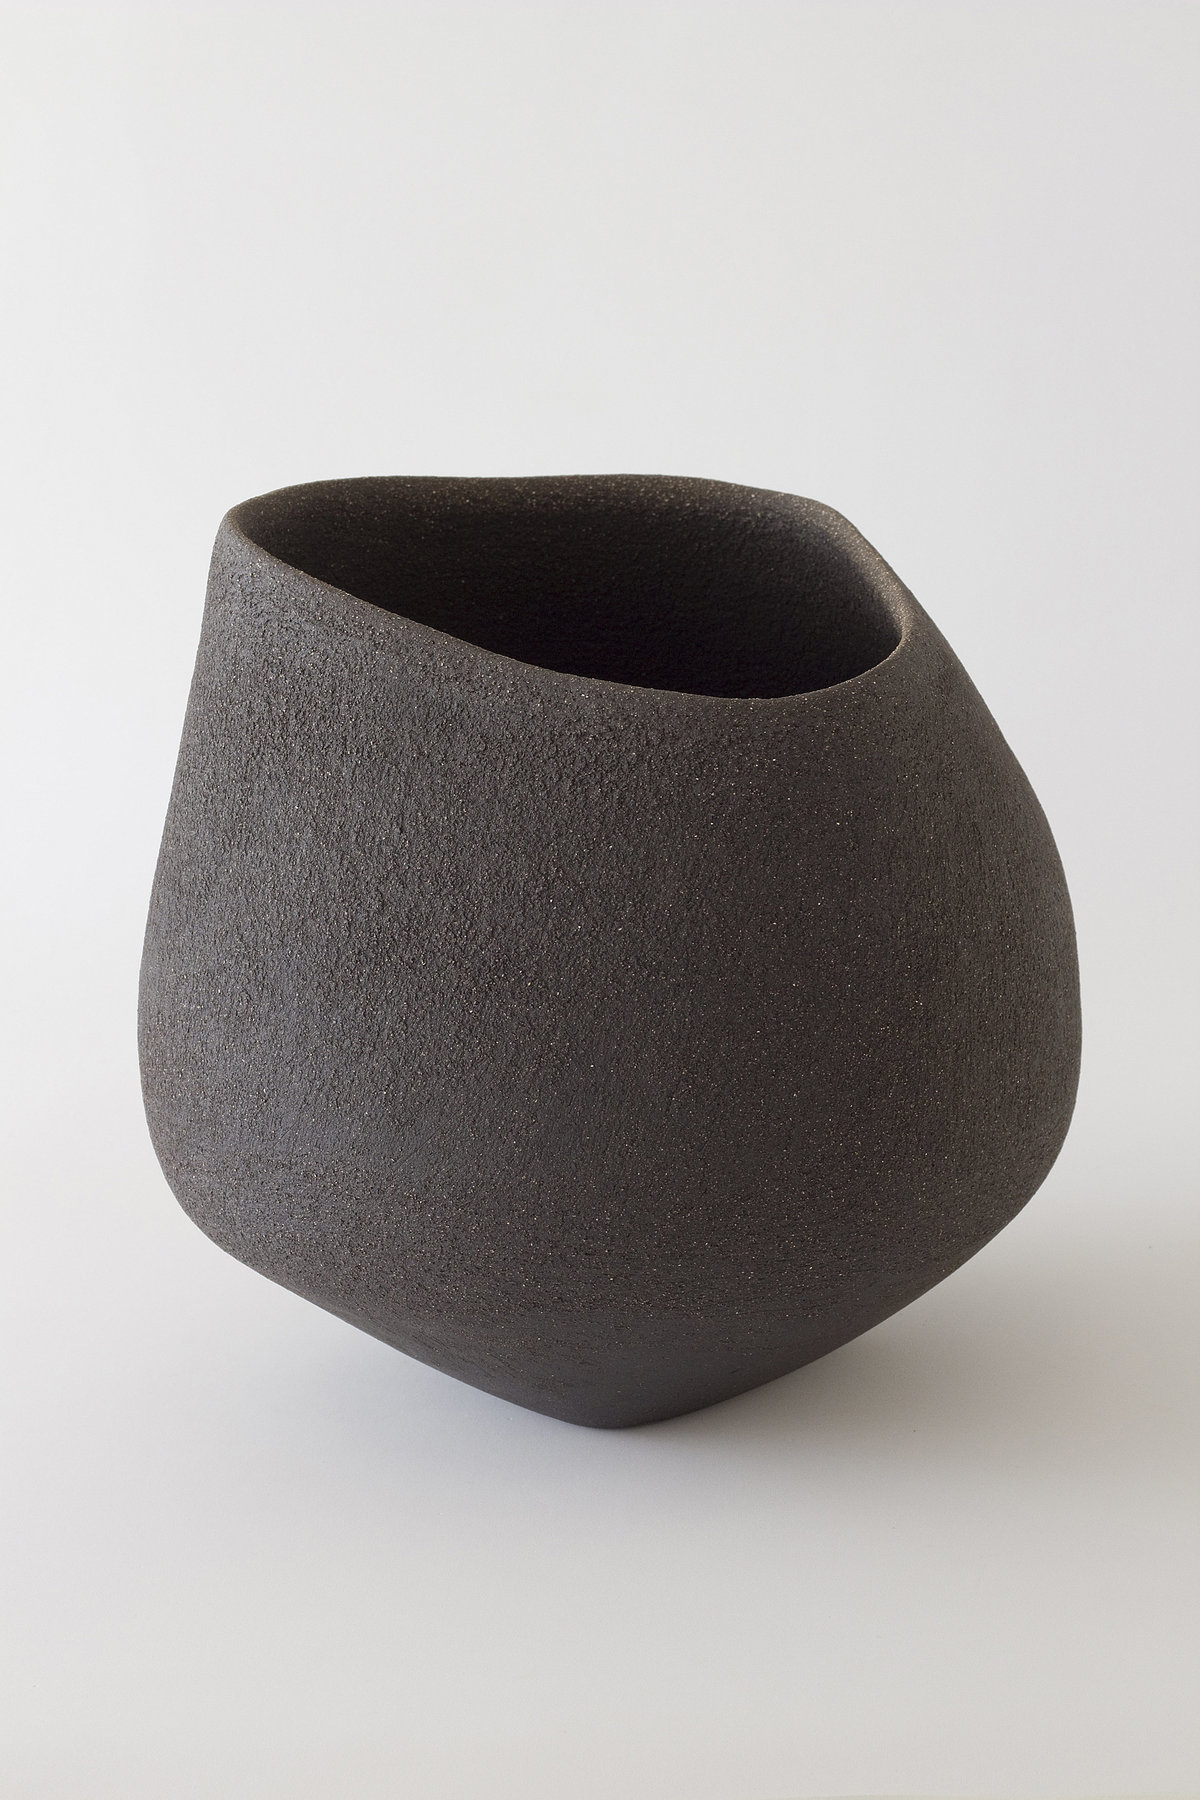 Yasha-Butler-Ceramic-Sculpture-Bowl-Black-Brown-Lithic_2-3500px